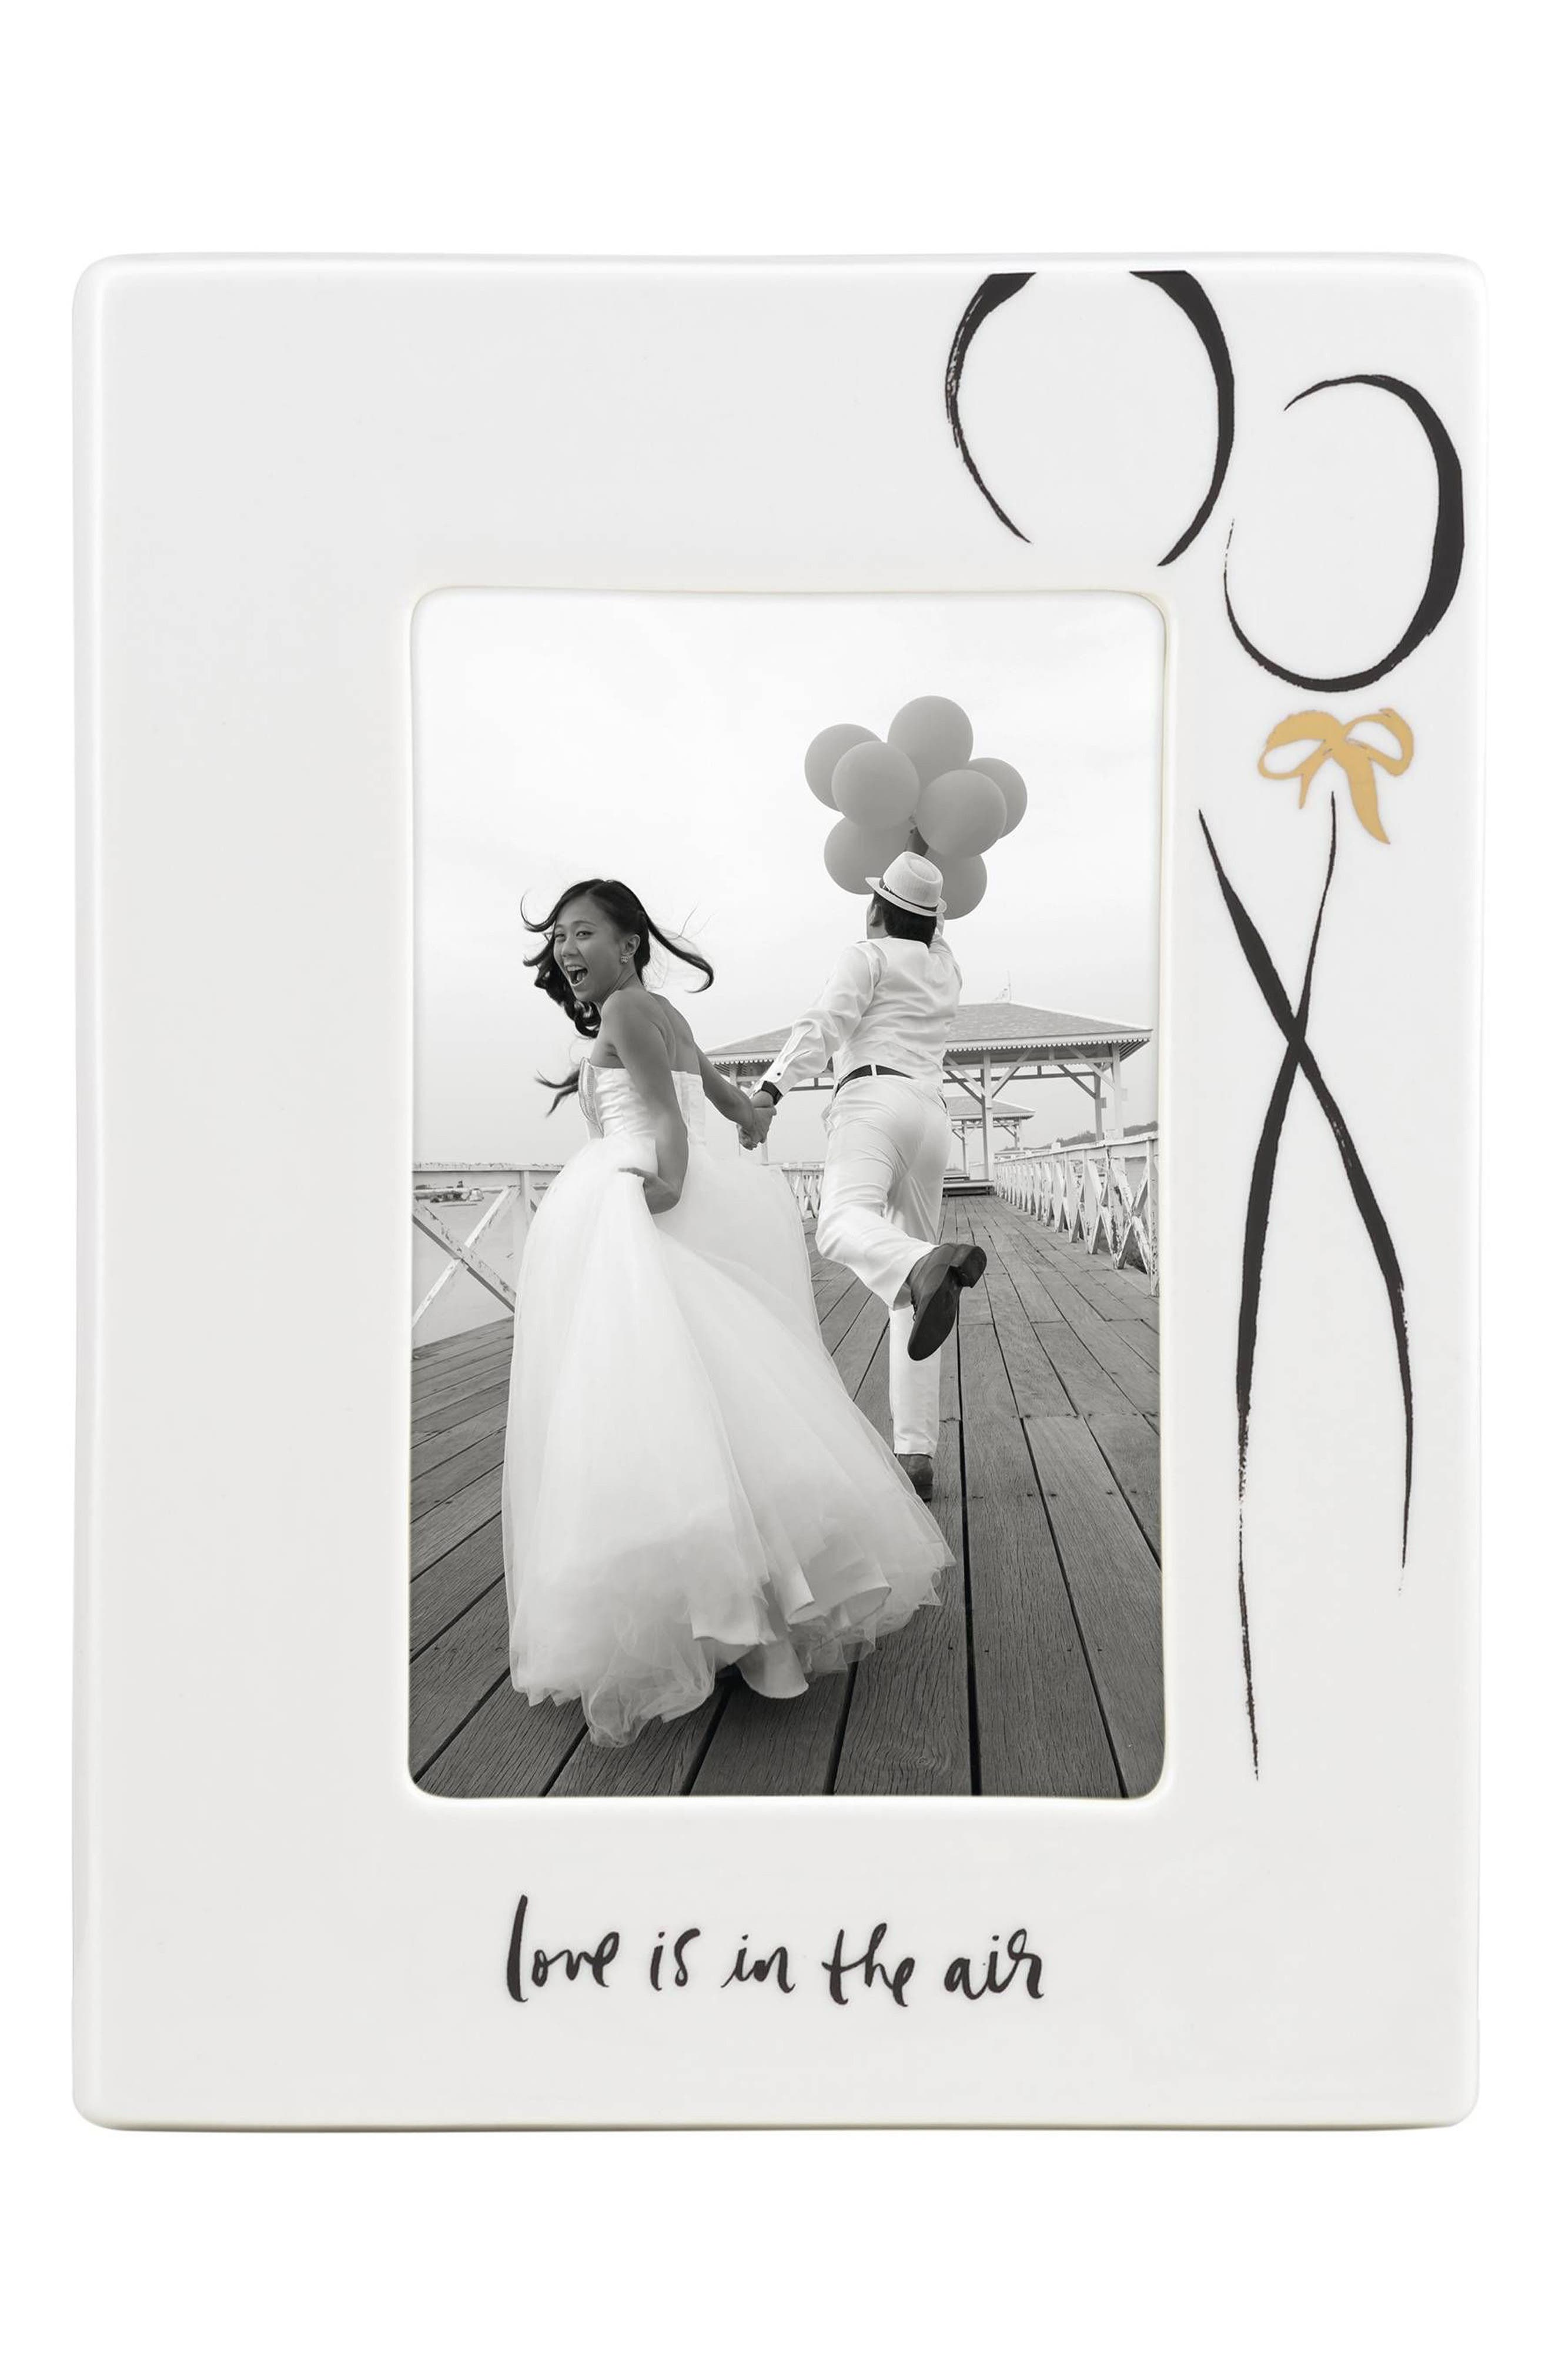 kate spade new york love is in the air frame